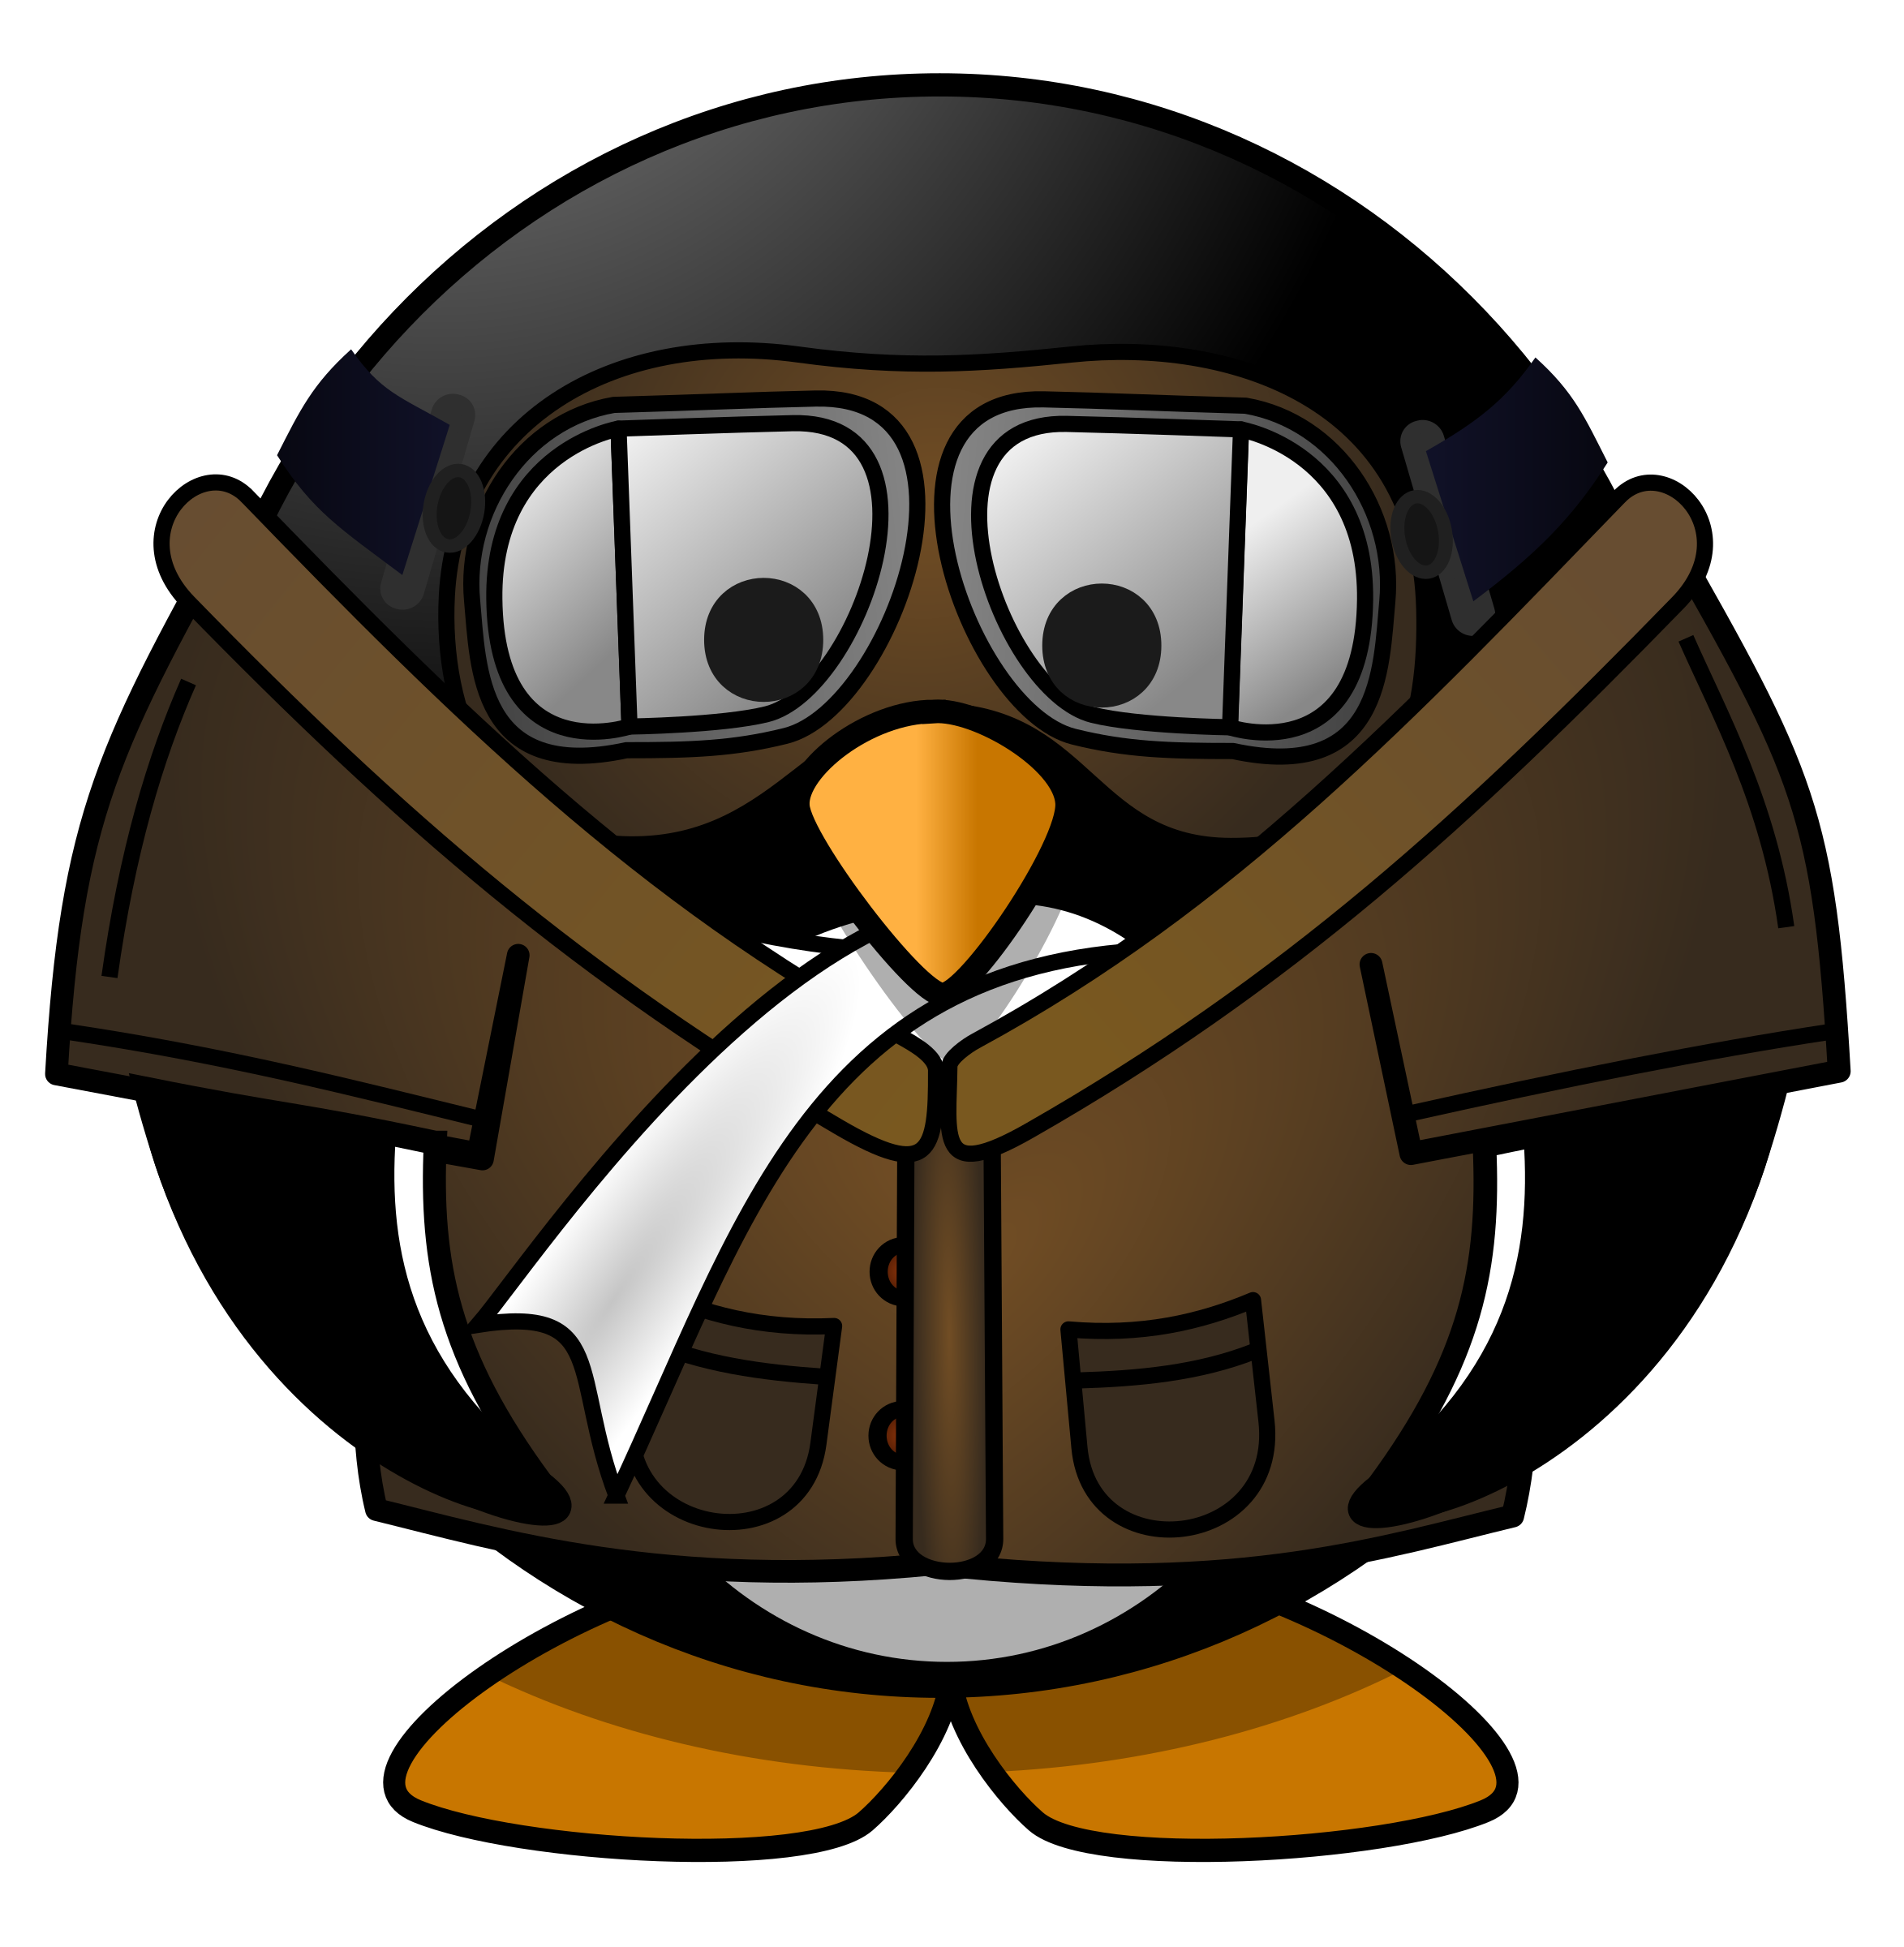 png library library Pilot clipart. Penguin big image png